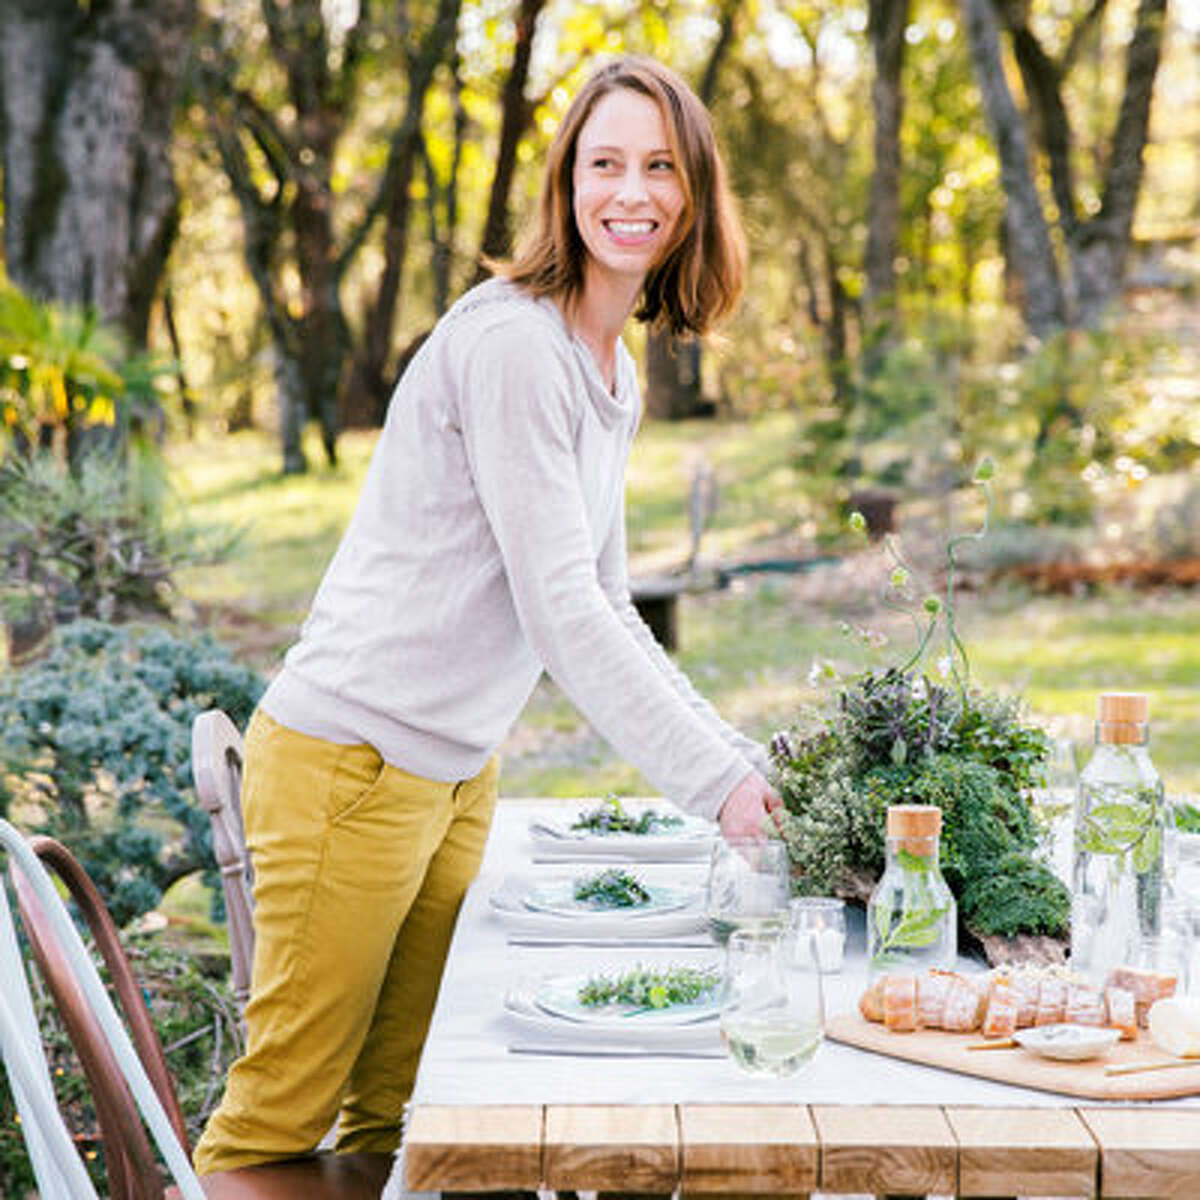 Garden to tabletop You might think the humble herb doesn't have a lot of star power. Let Caitlin Atkinson convince you otherwise. The photographer and stylist literally wrote the book on crafting with plants (Plant Craft, out from Timber Press in fall 2016), so when her family gathers for dinner in her grandmother's garden in Nevada City, California, Atkinson is almost always on decorating duty. Lately, thyme, rosemary, and other culinary standbys are finding their way onto her table as easy flourishes and softly scented centerpieces.